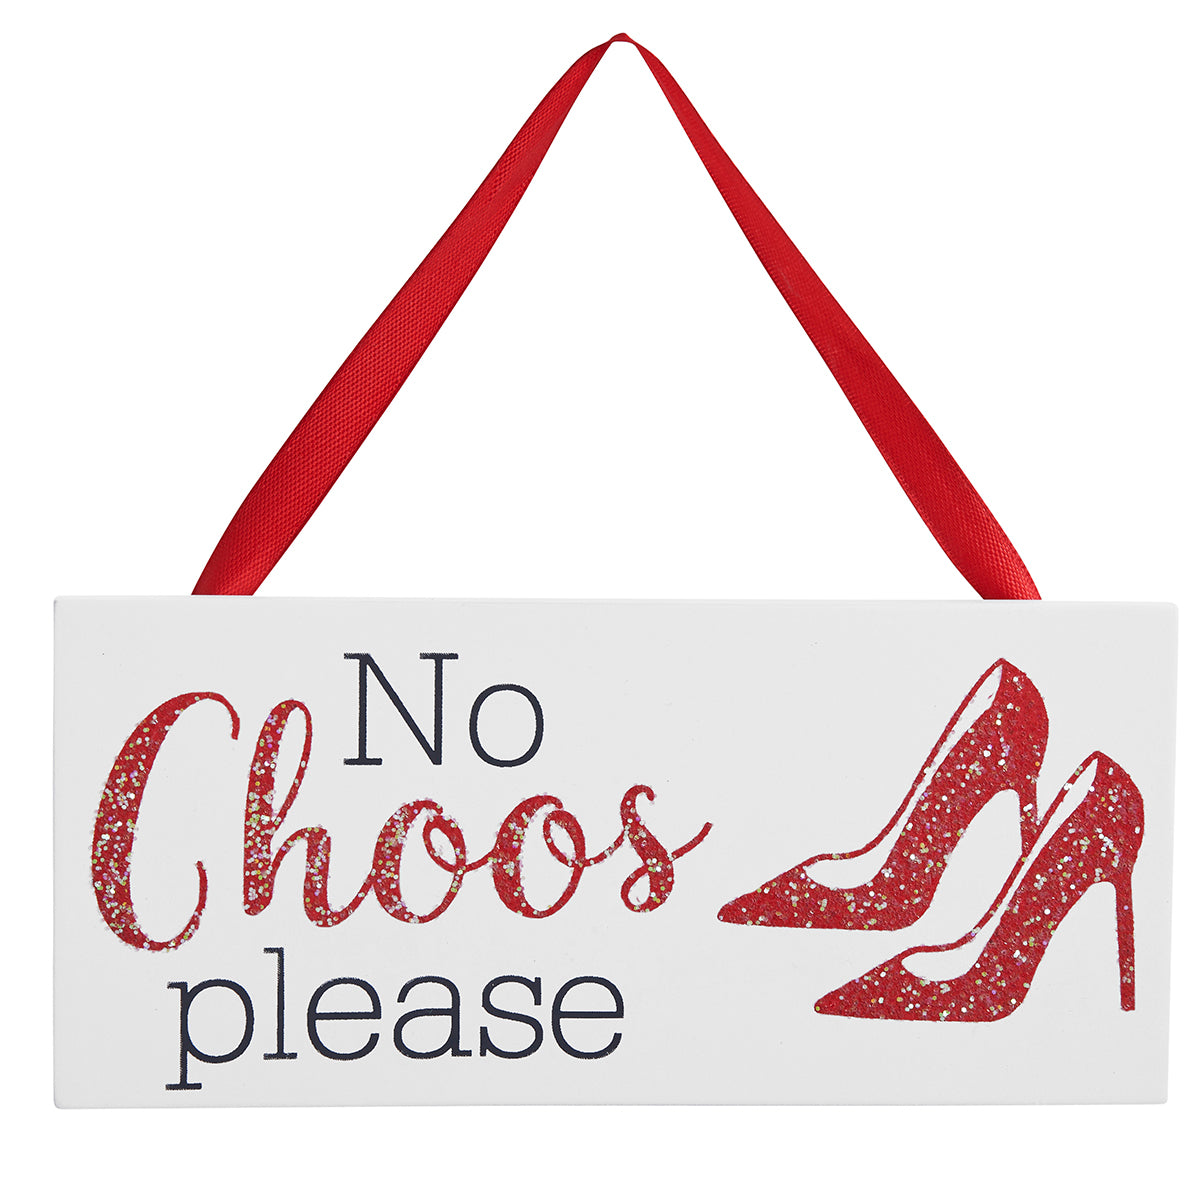 Jimmy Choo inspired wooden sign featuring glitter red shoes and the slogan: No Choos Please